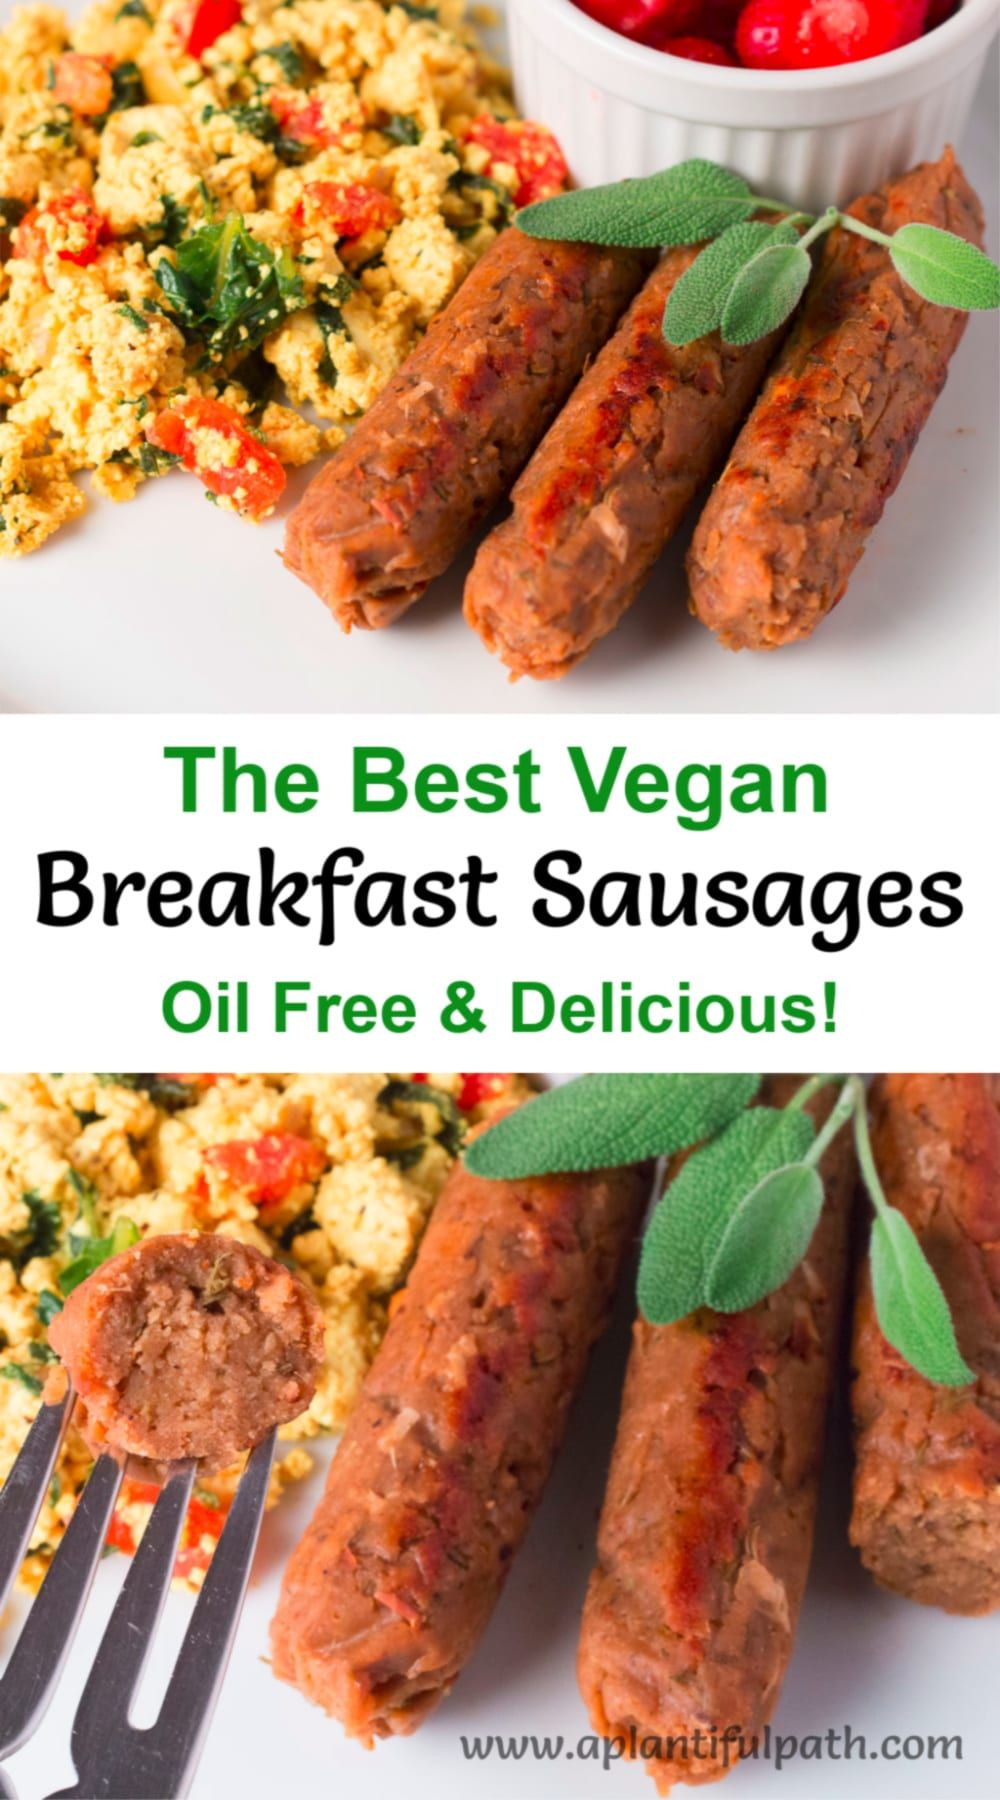 Vegan Breakfast Sausage Links Oil Free And Delicious A Plantiful Path Recipe In 2020 Breakfast Sausage Links Sausage Breakfast Vegetarian Recipes